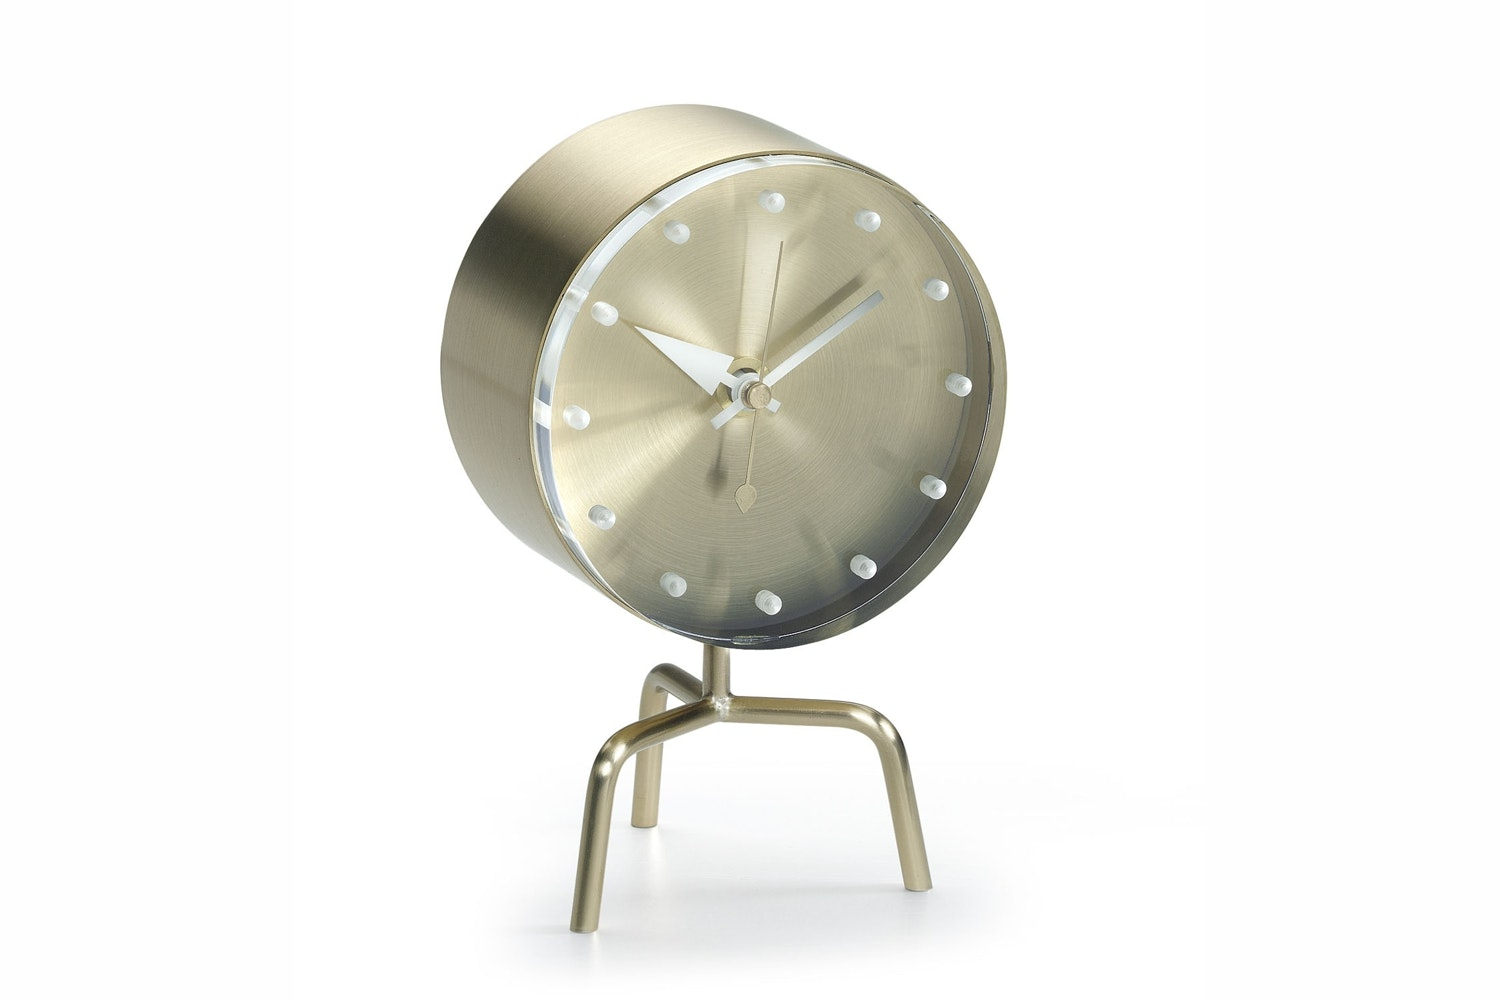 Desk Clocks by George Nelson for Vitra